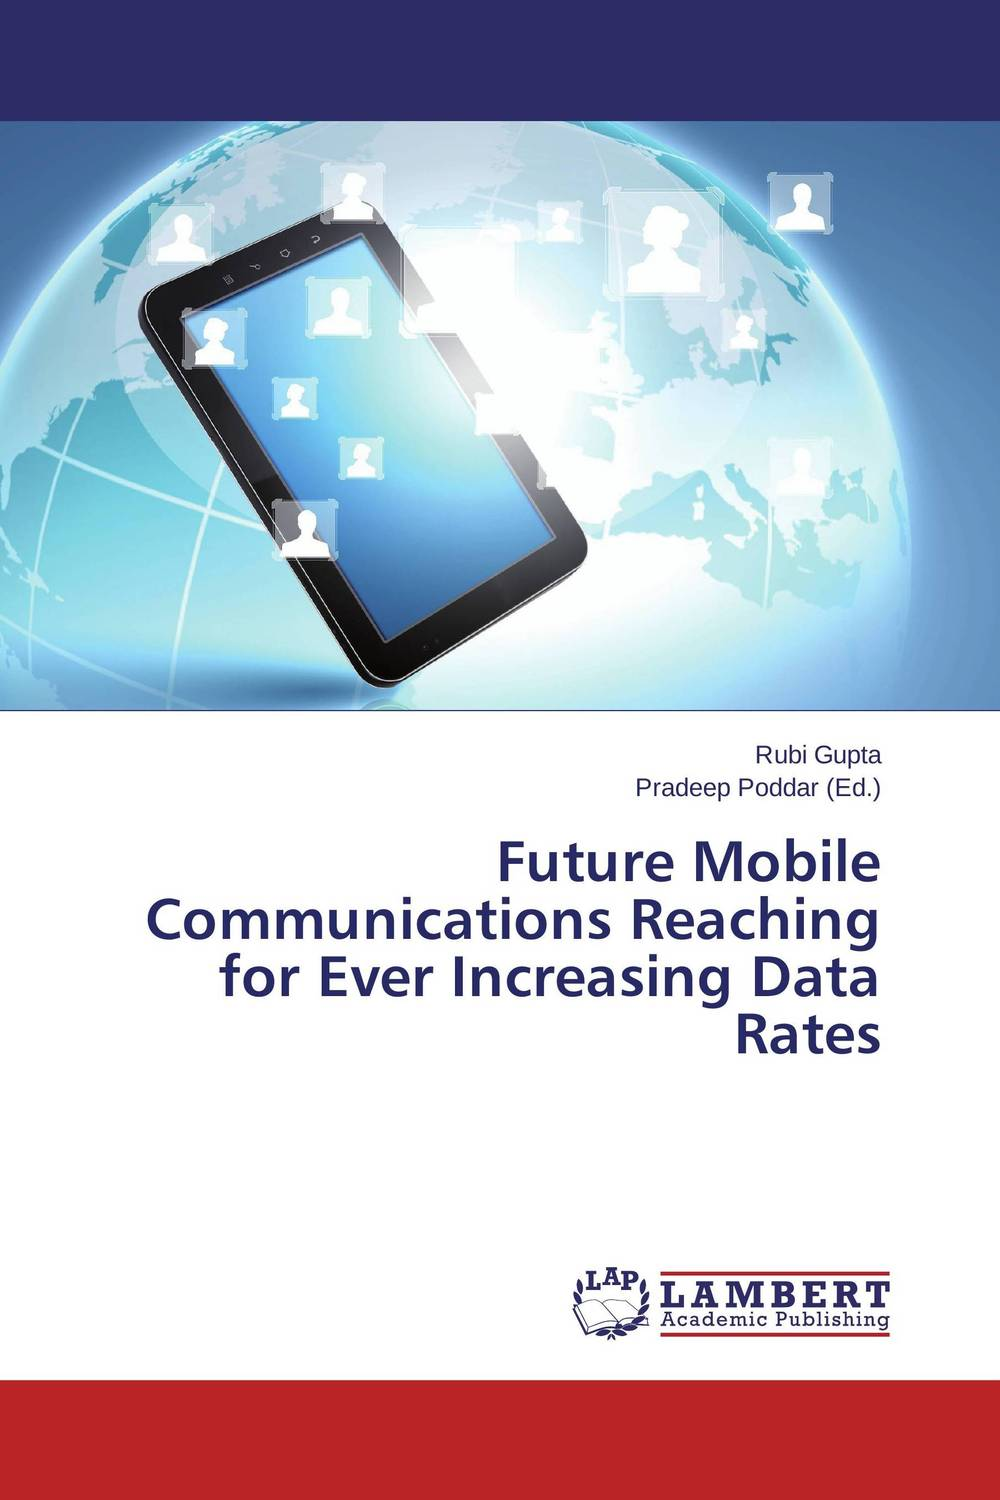 Future Mobile Communications Reaching for Ever Increasing Data Rates